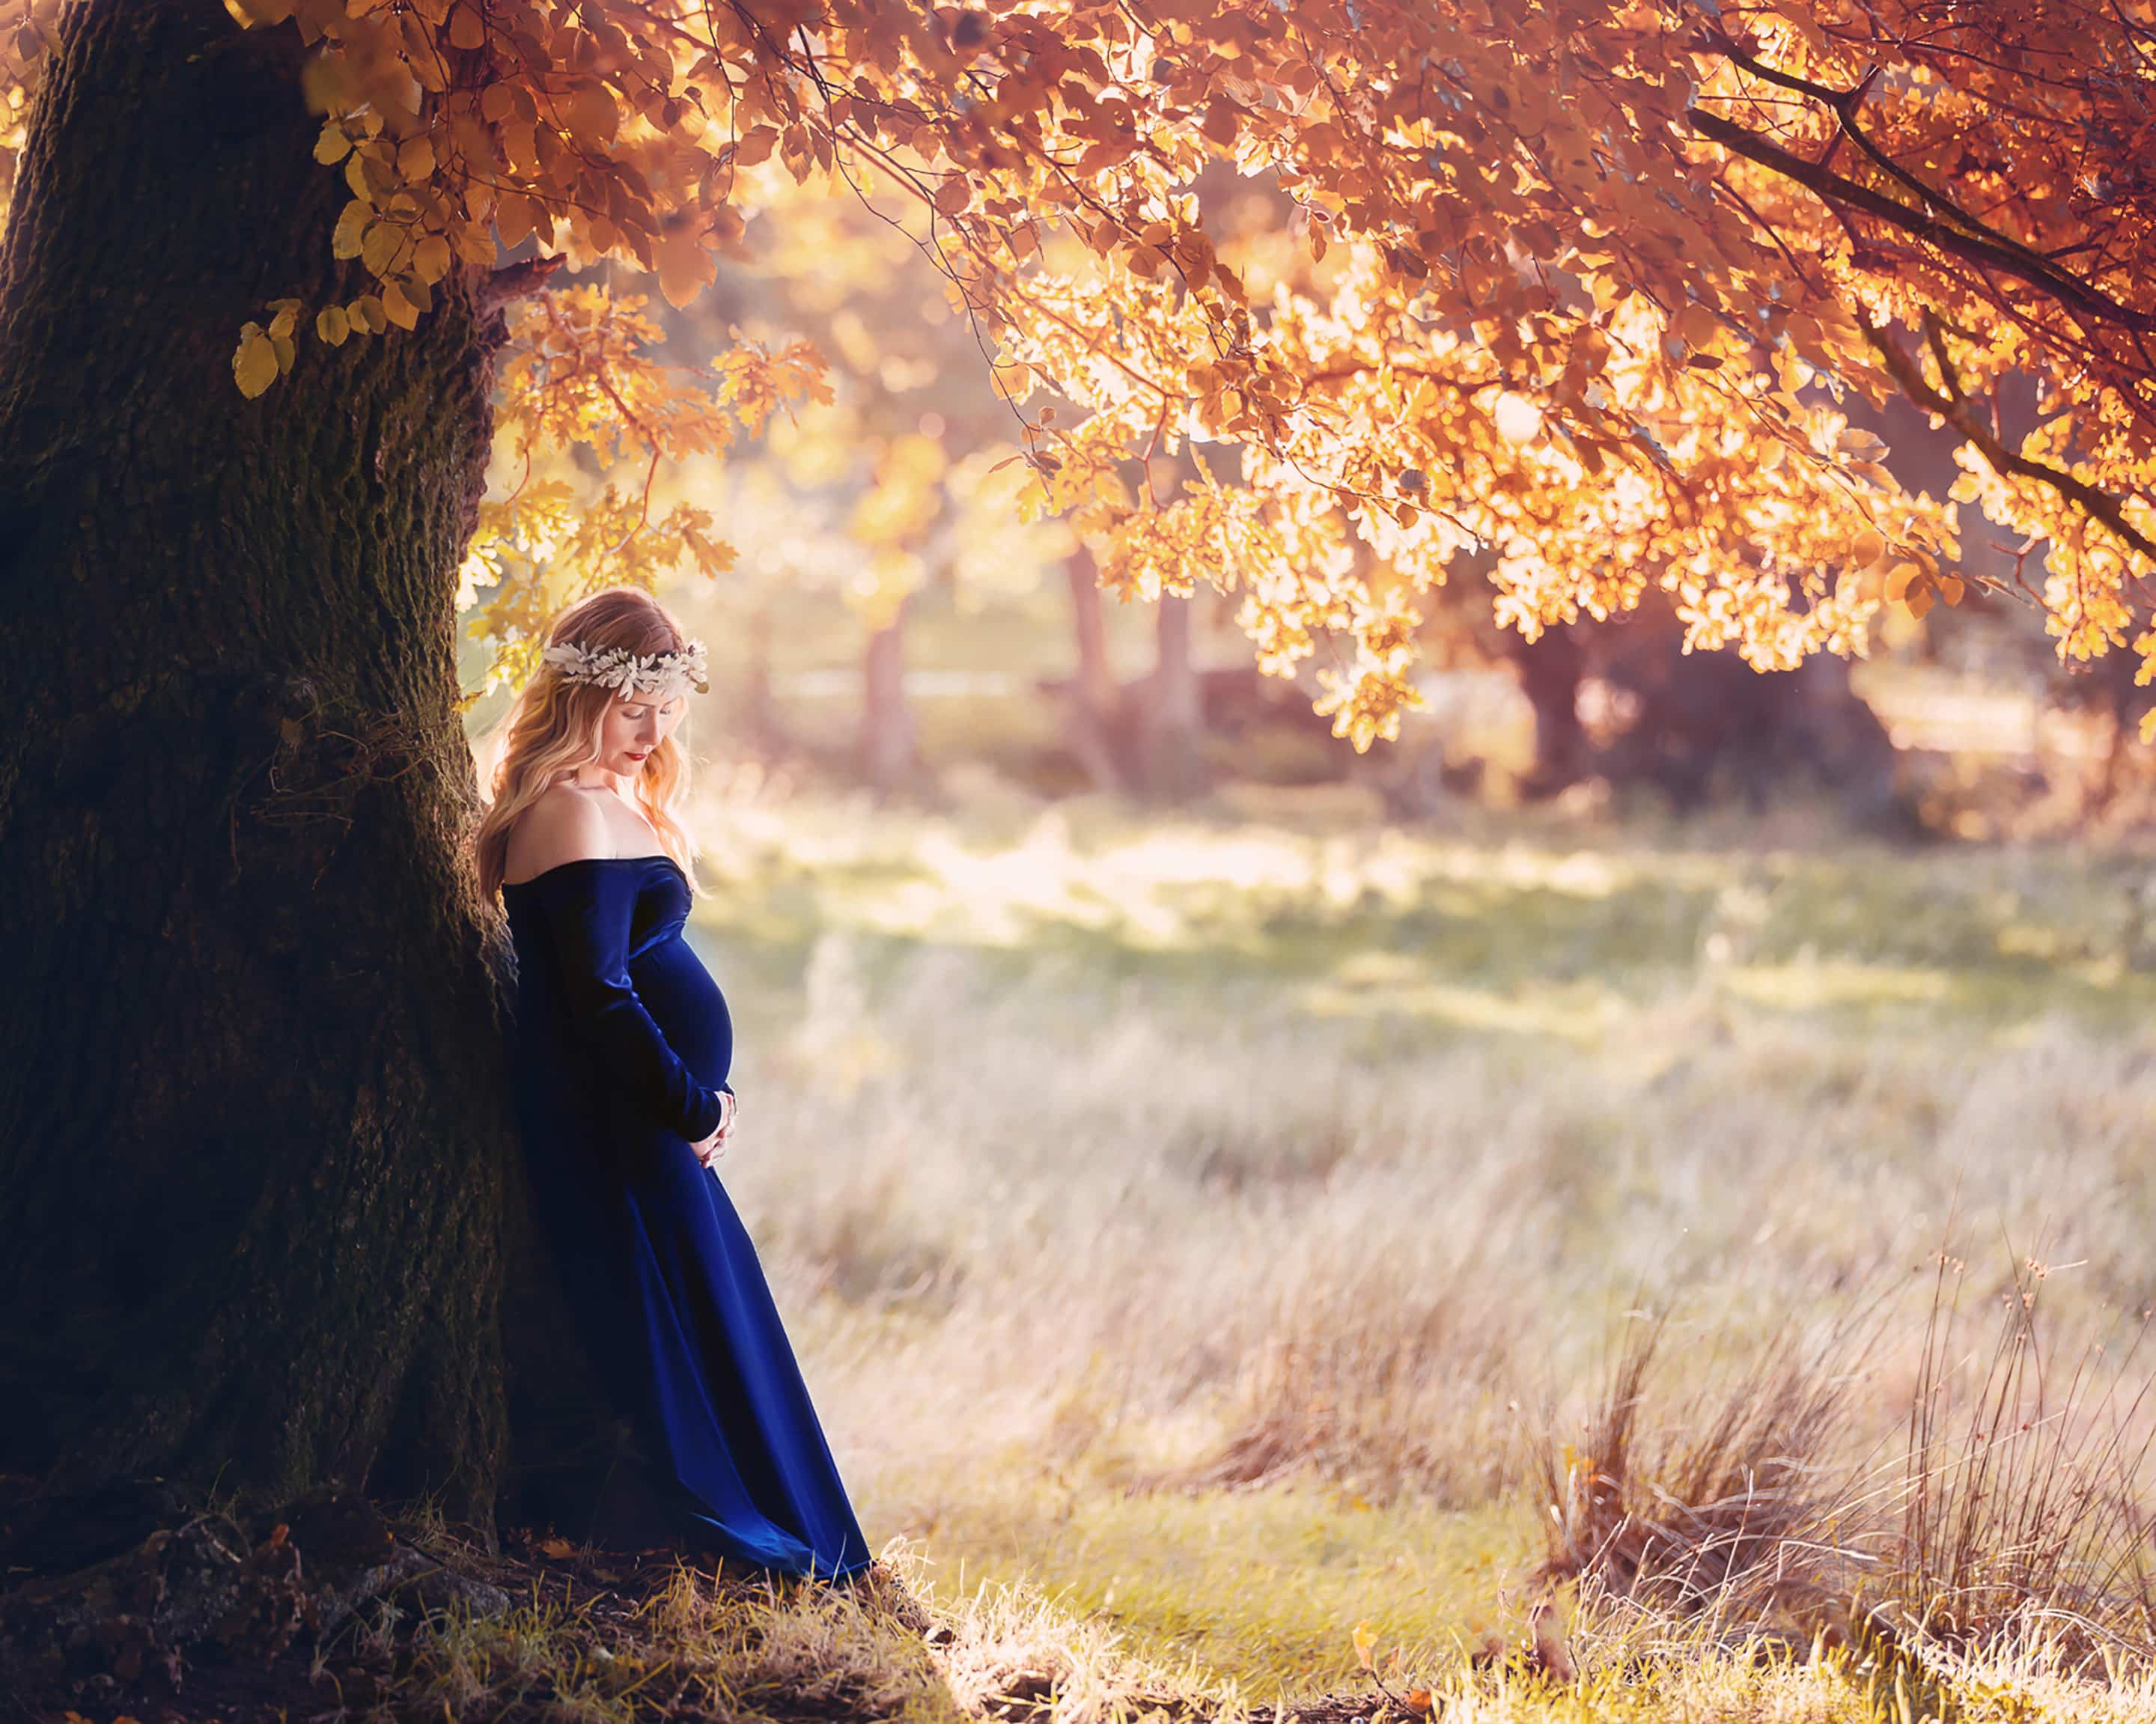 Pregnant lady in blue velvet dress under a tree